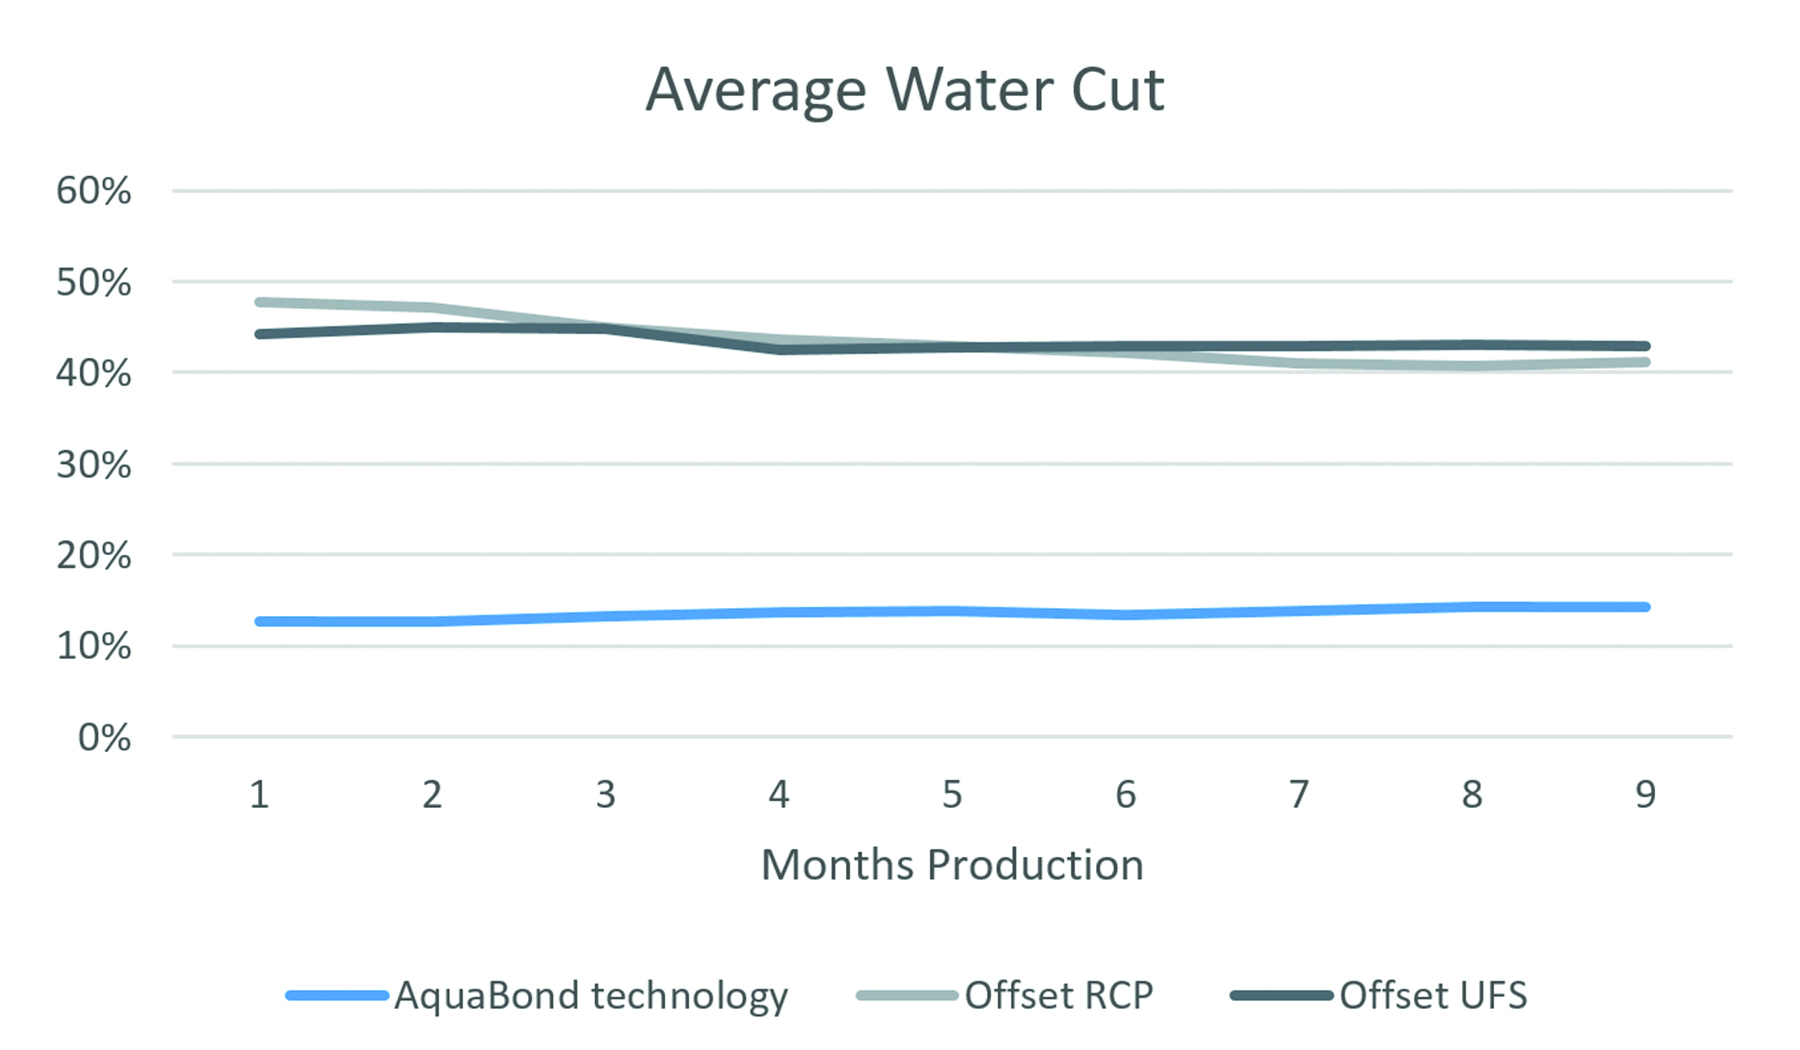 Hexion average water cut case study